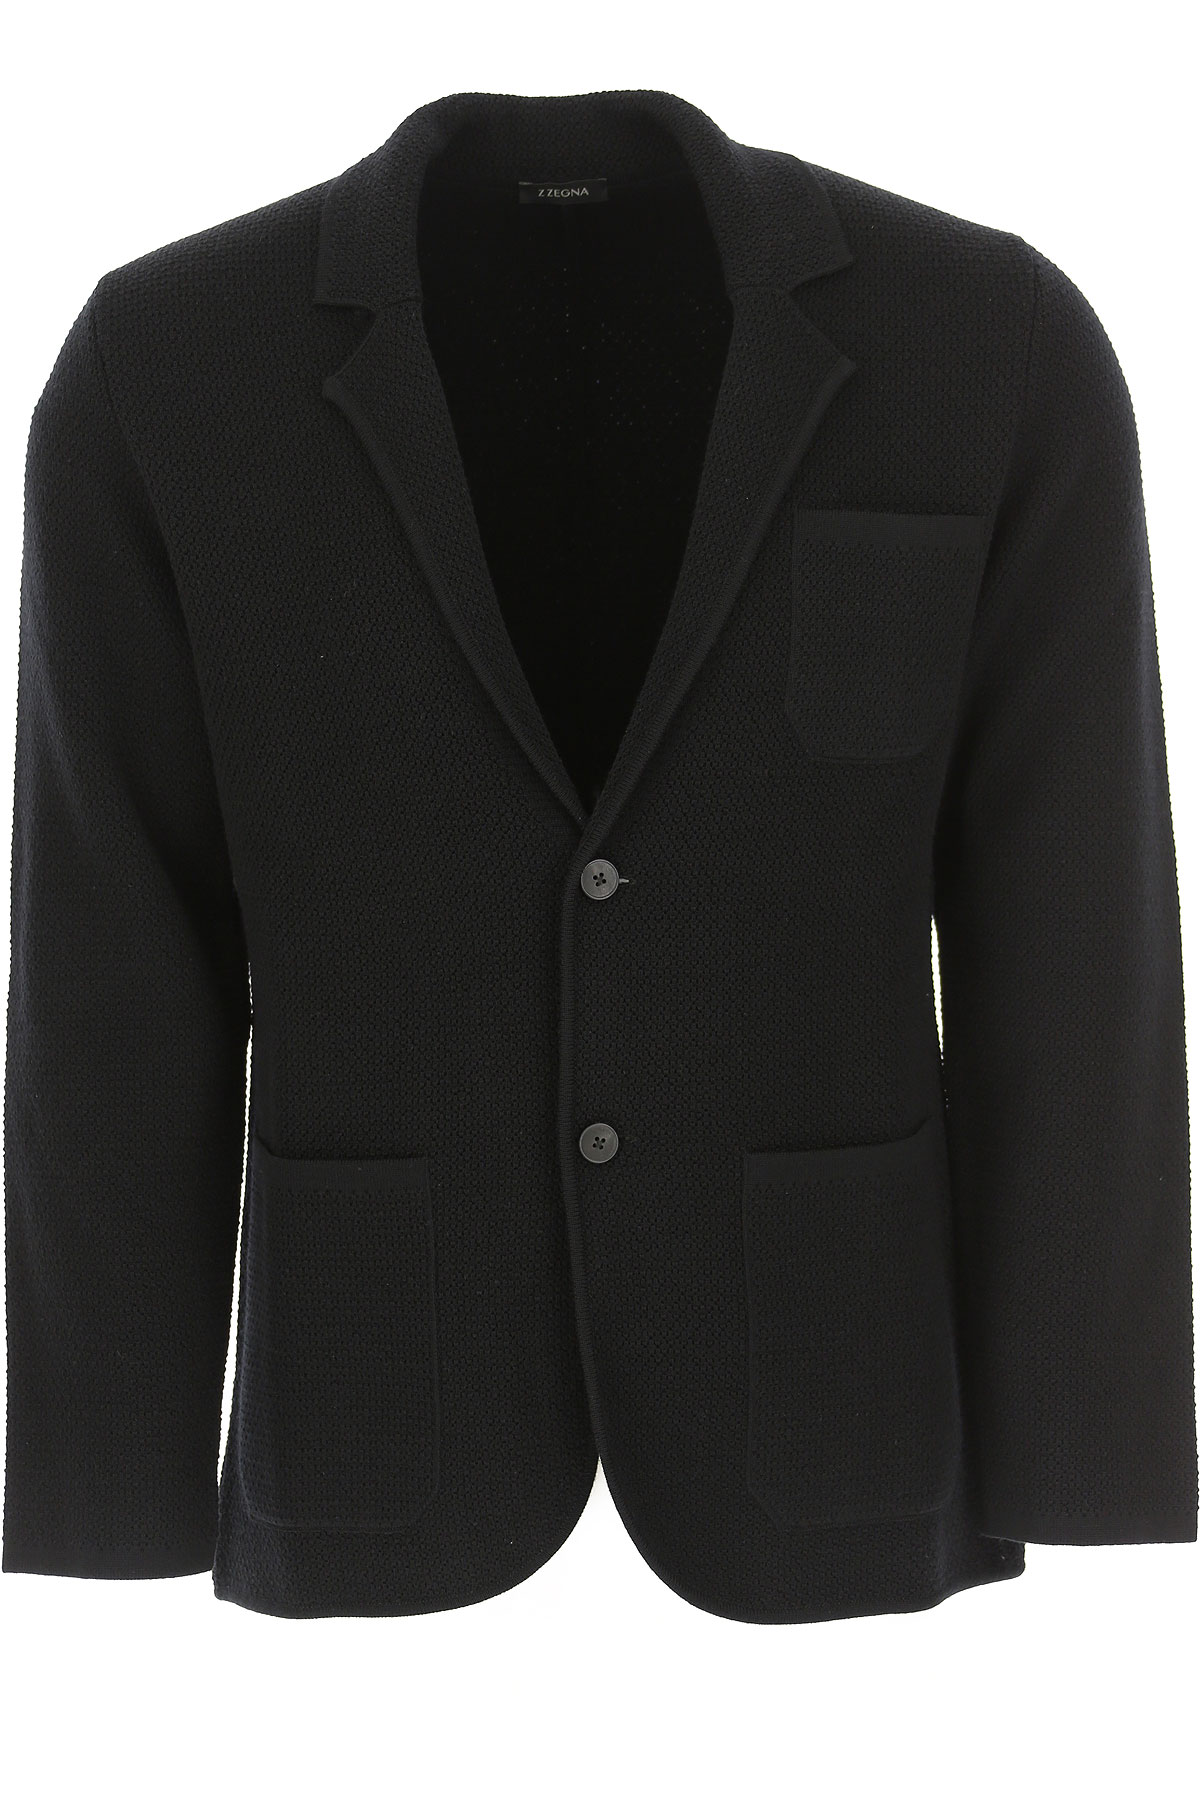 Ermenegildo Zegna Jacket for Men, Black, Wool, 2019, L M XL